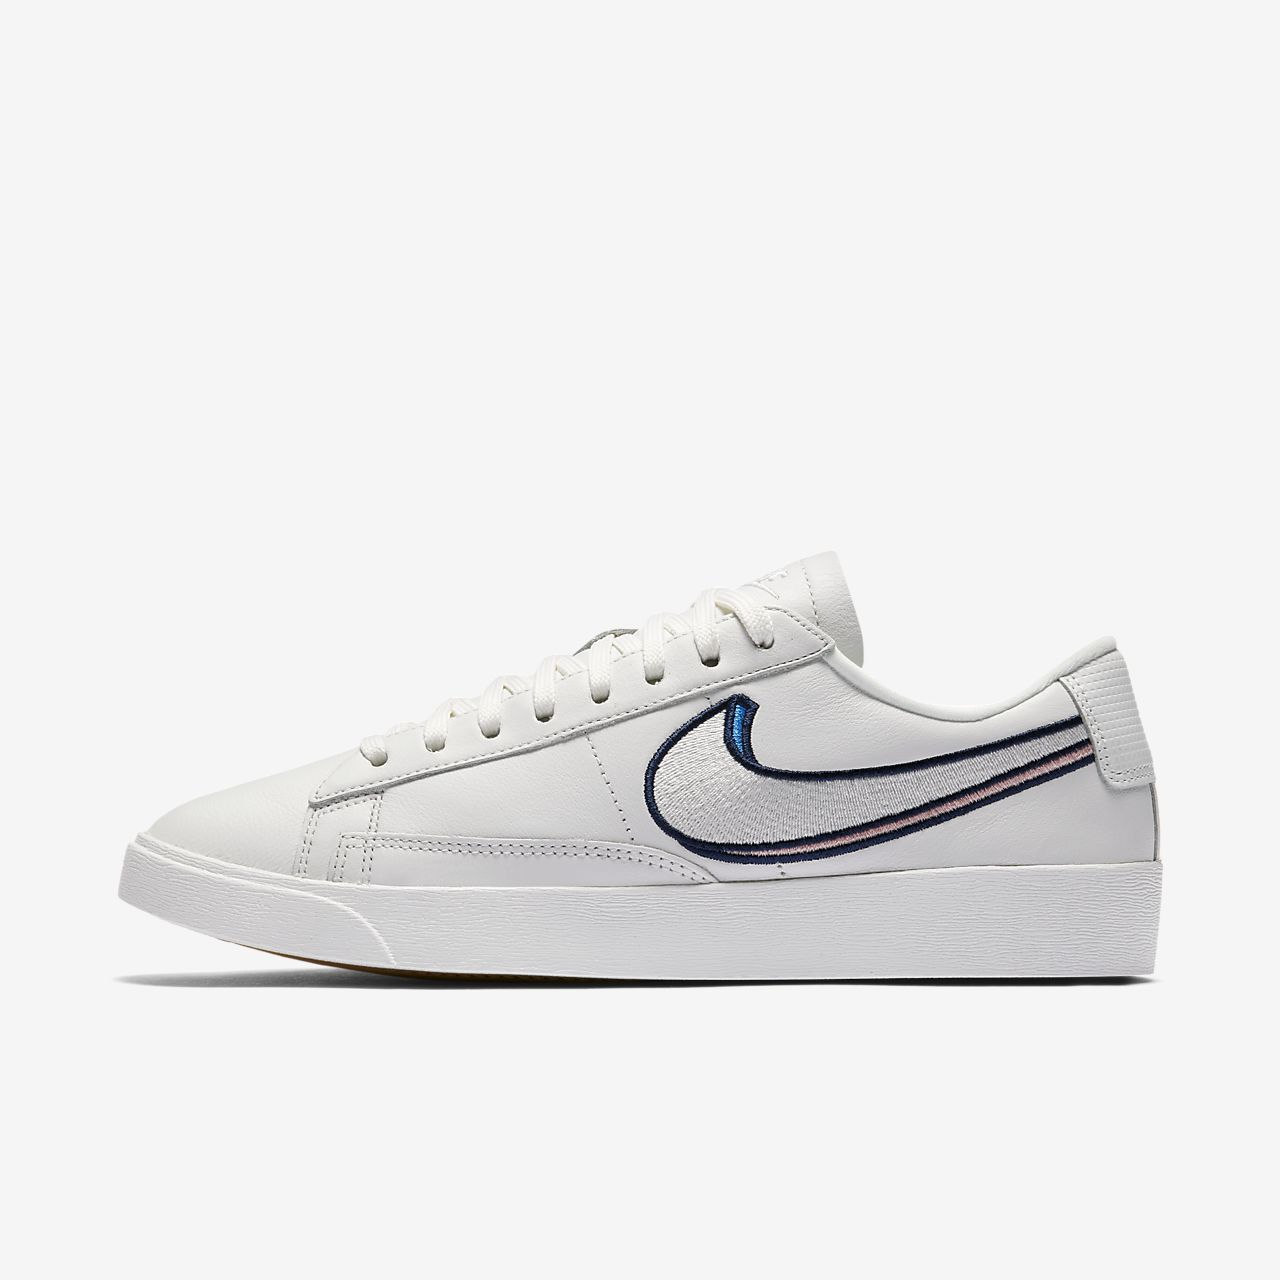 buy online 08f6c 3f665 Nike Blazer Low LX Women s Shoe